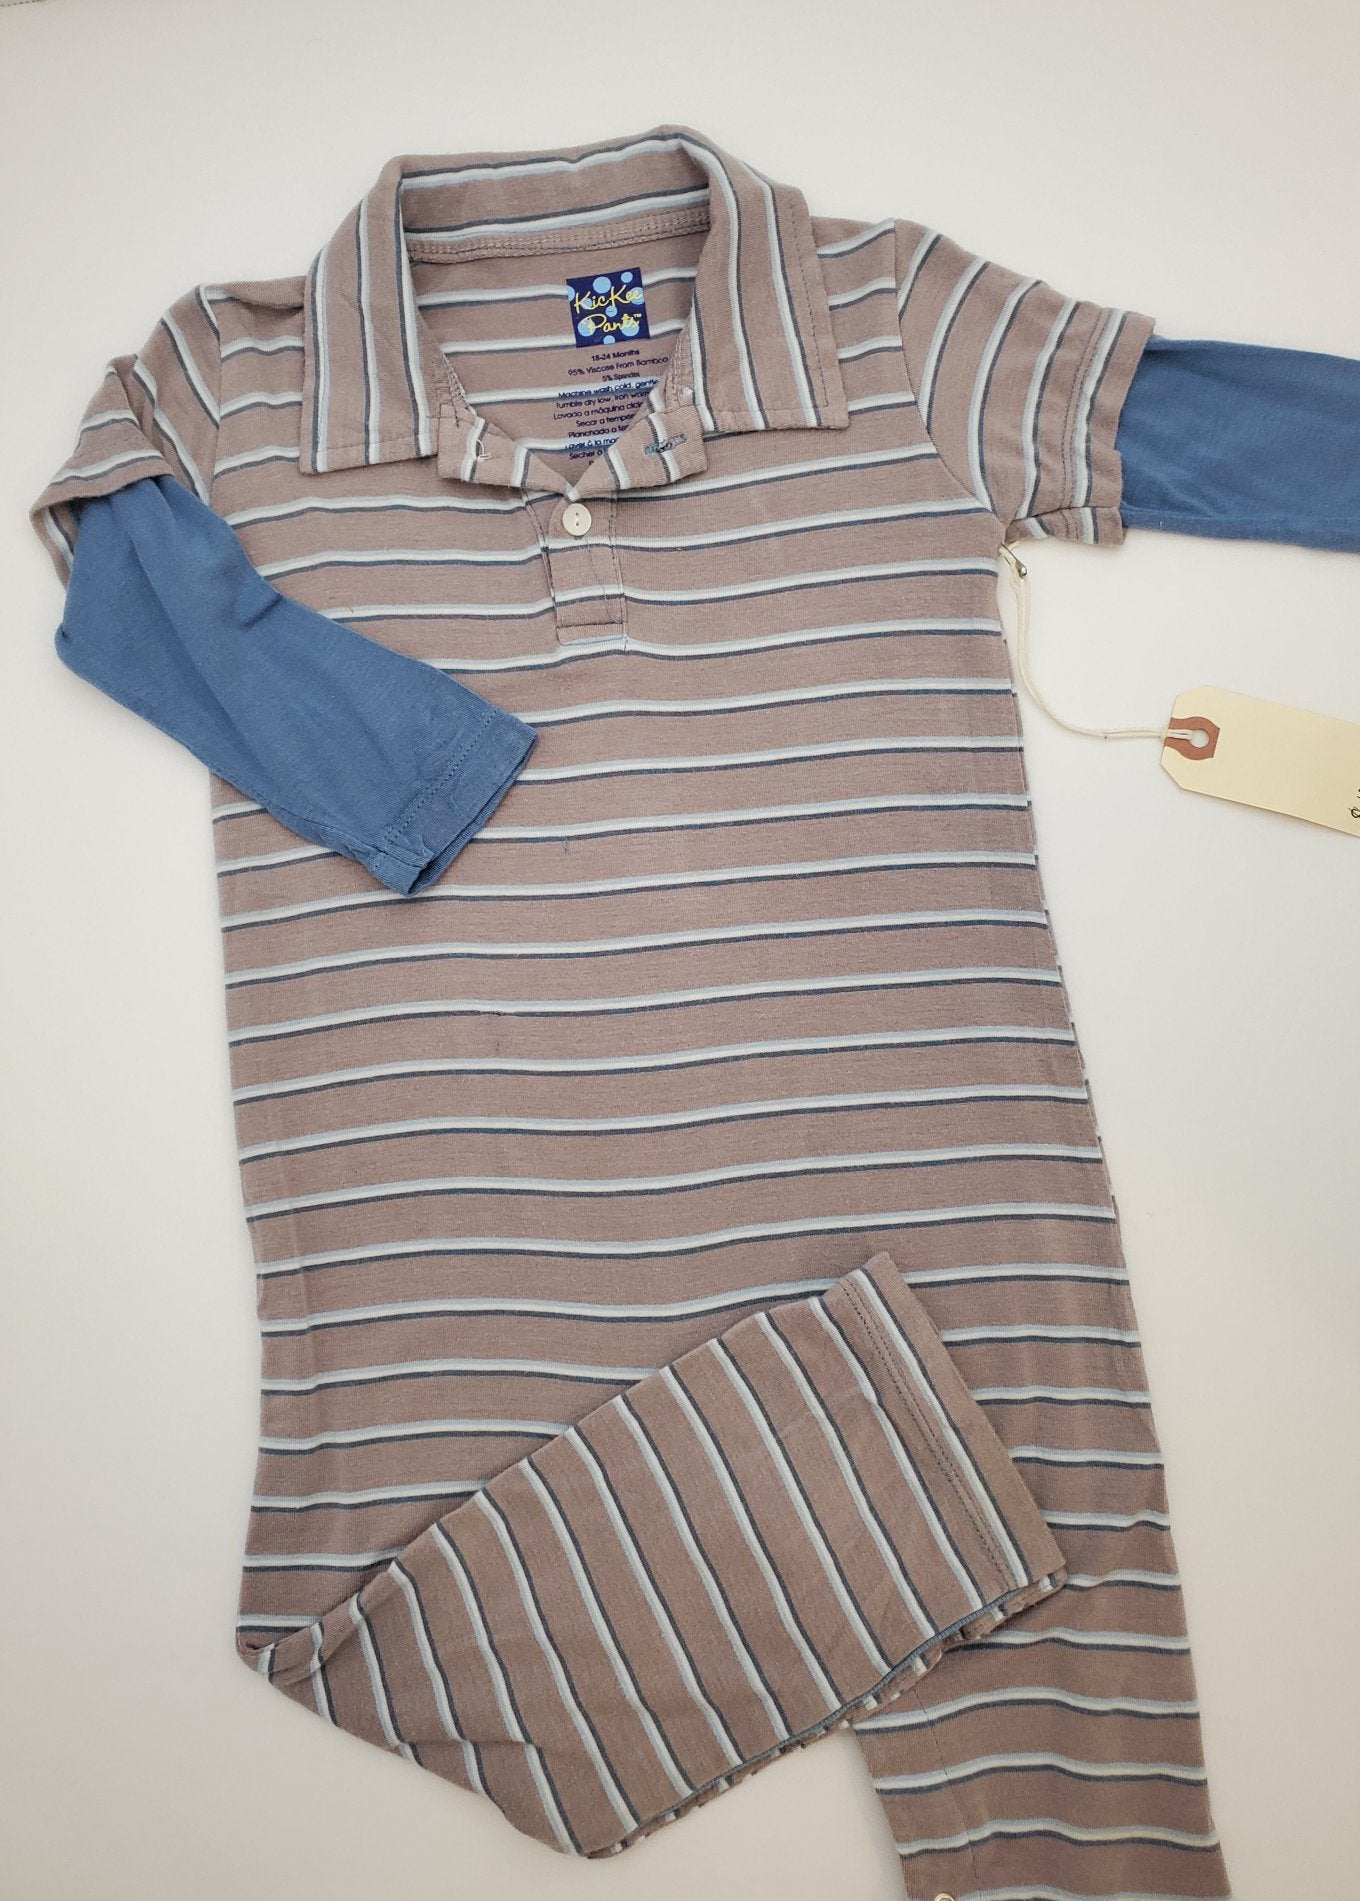 Resale 18-24 m KicKee Pants Grey / Blue Striped Playsuit